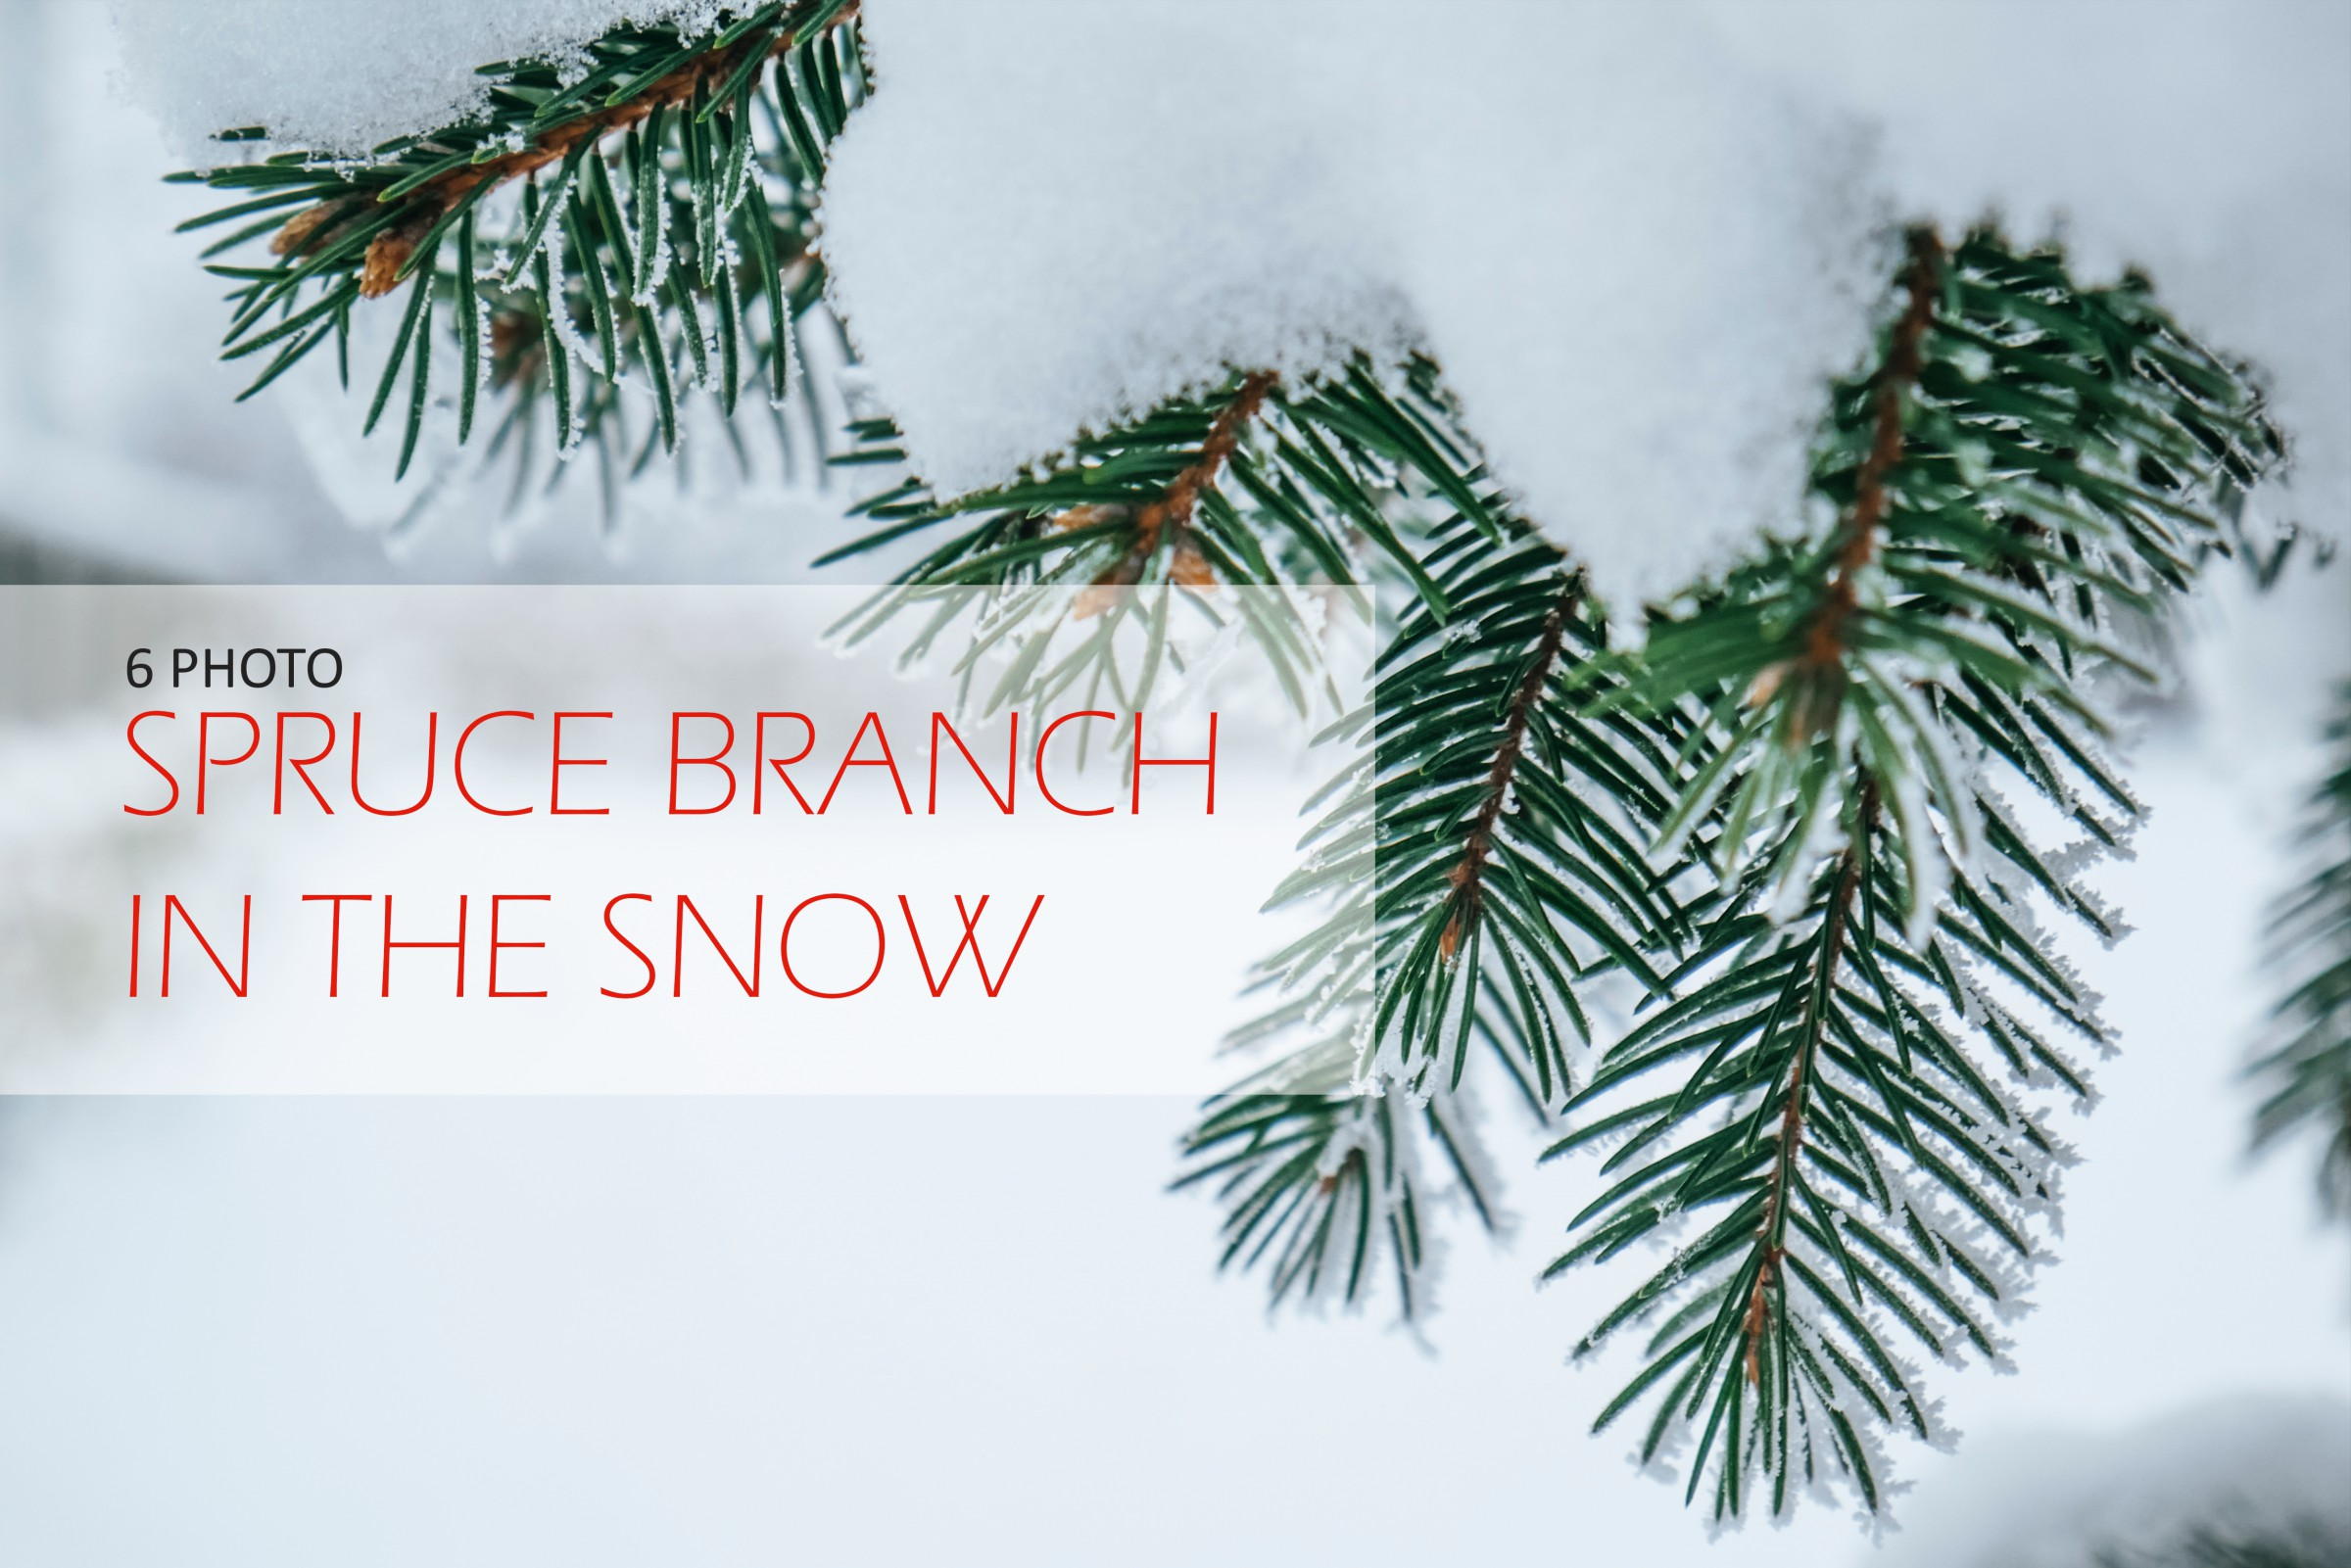 Spruce branch in the snow close-up example image 1